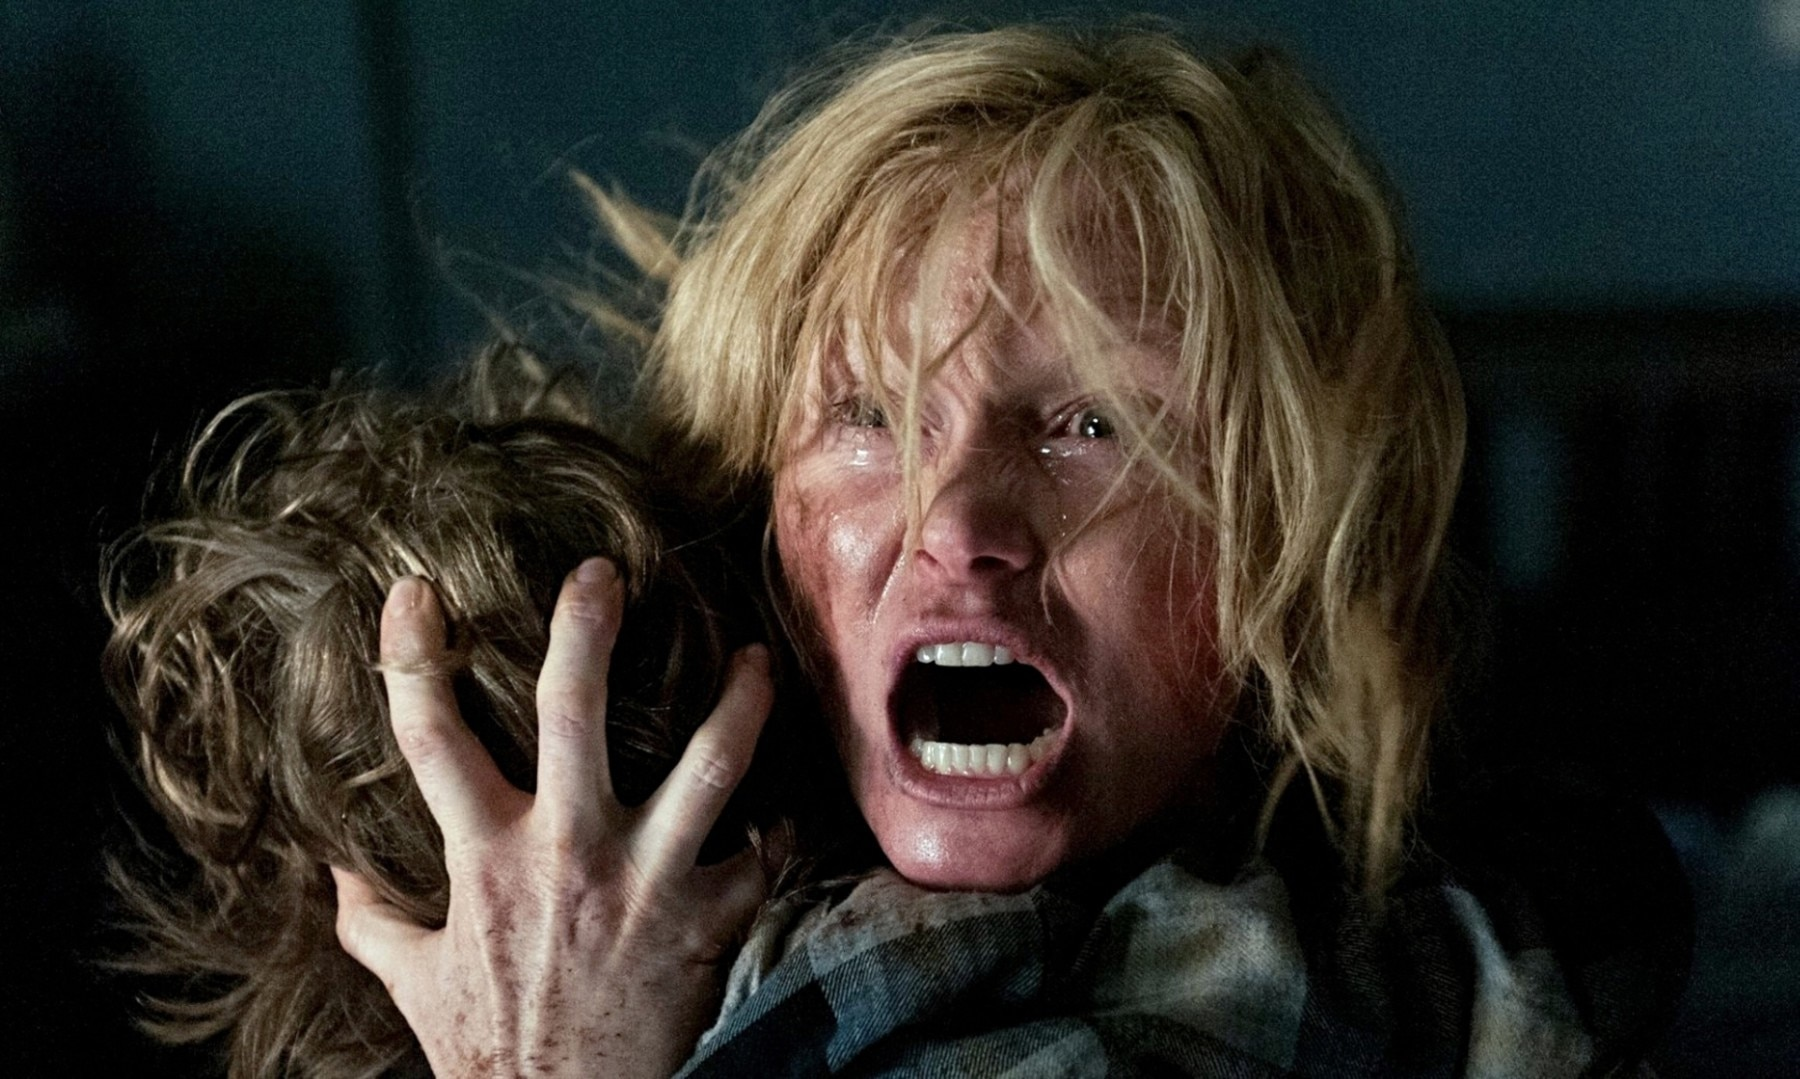 Friday the 13th: 13 creepy movies to watch this weekend